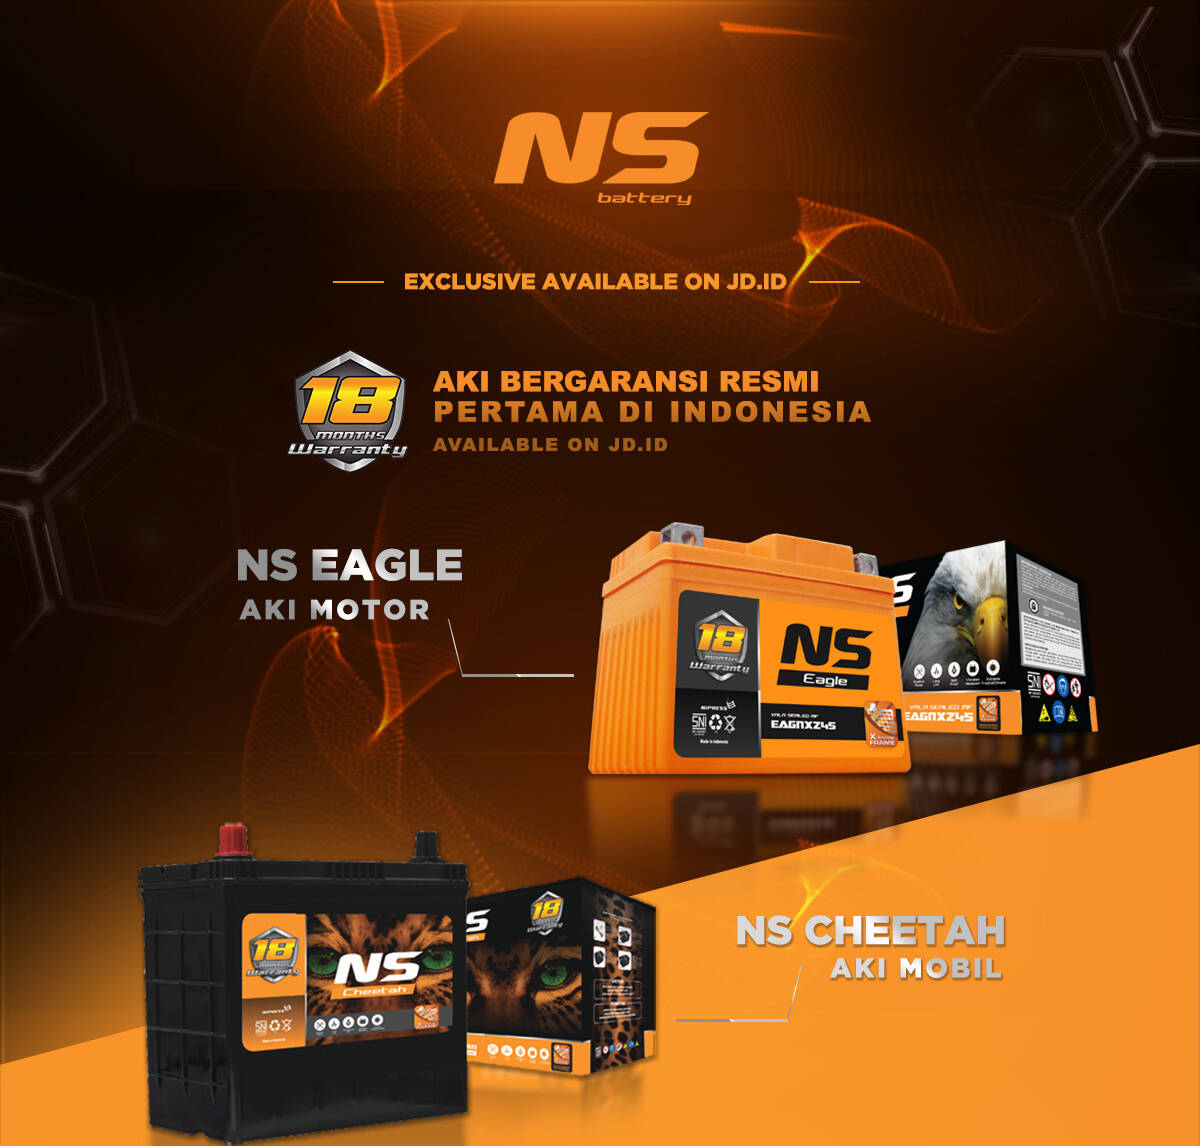 Promo Ns Battery New Arrival Paket Aksesoris All Scoopy Stylish Brown